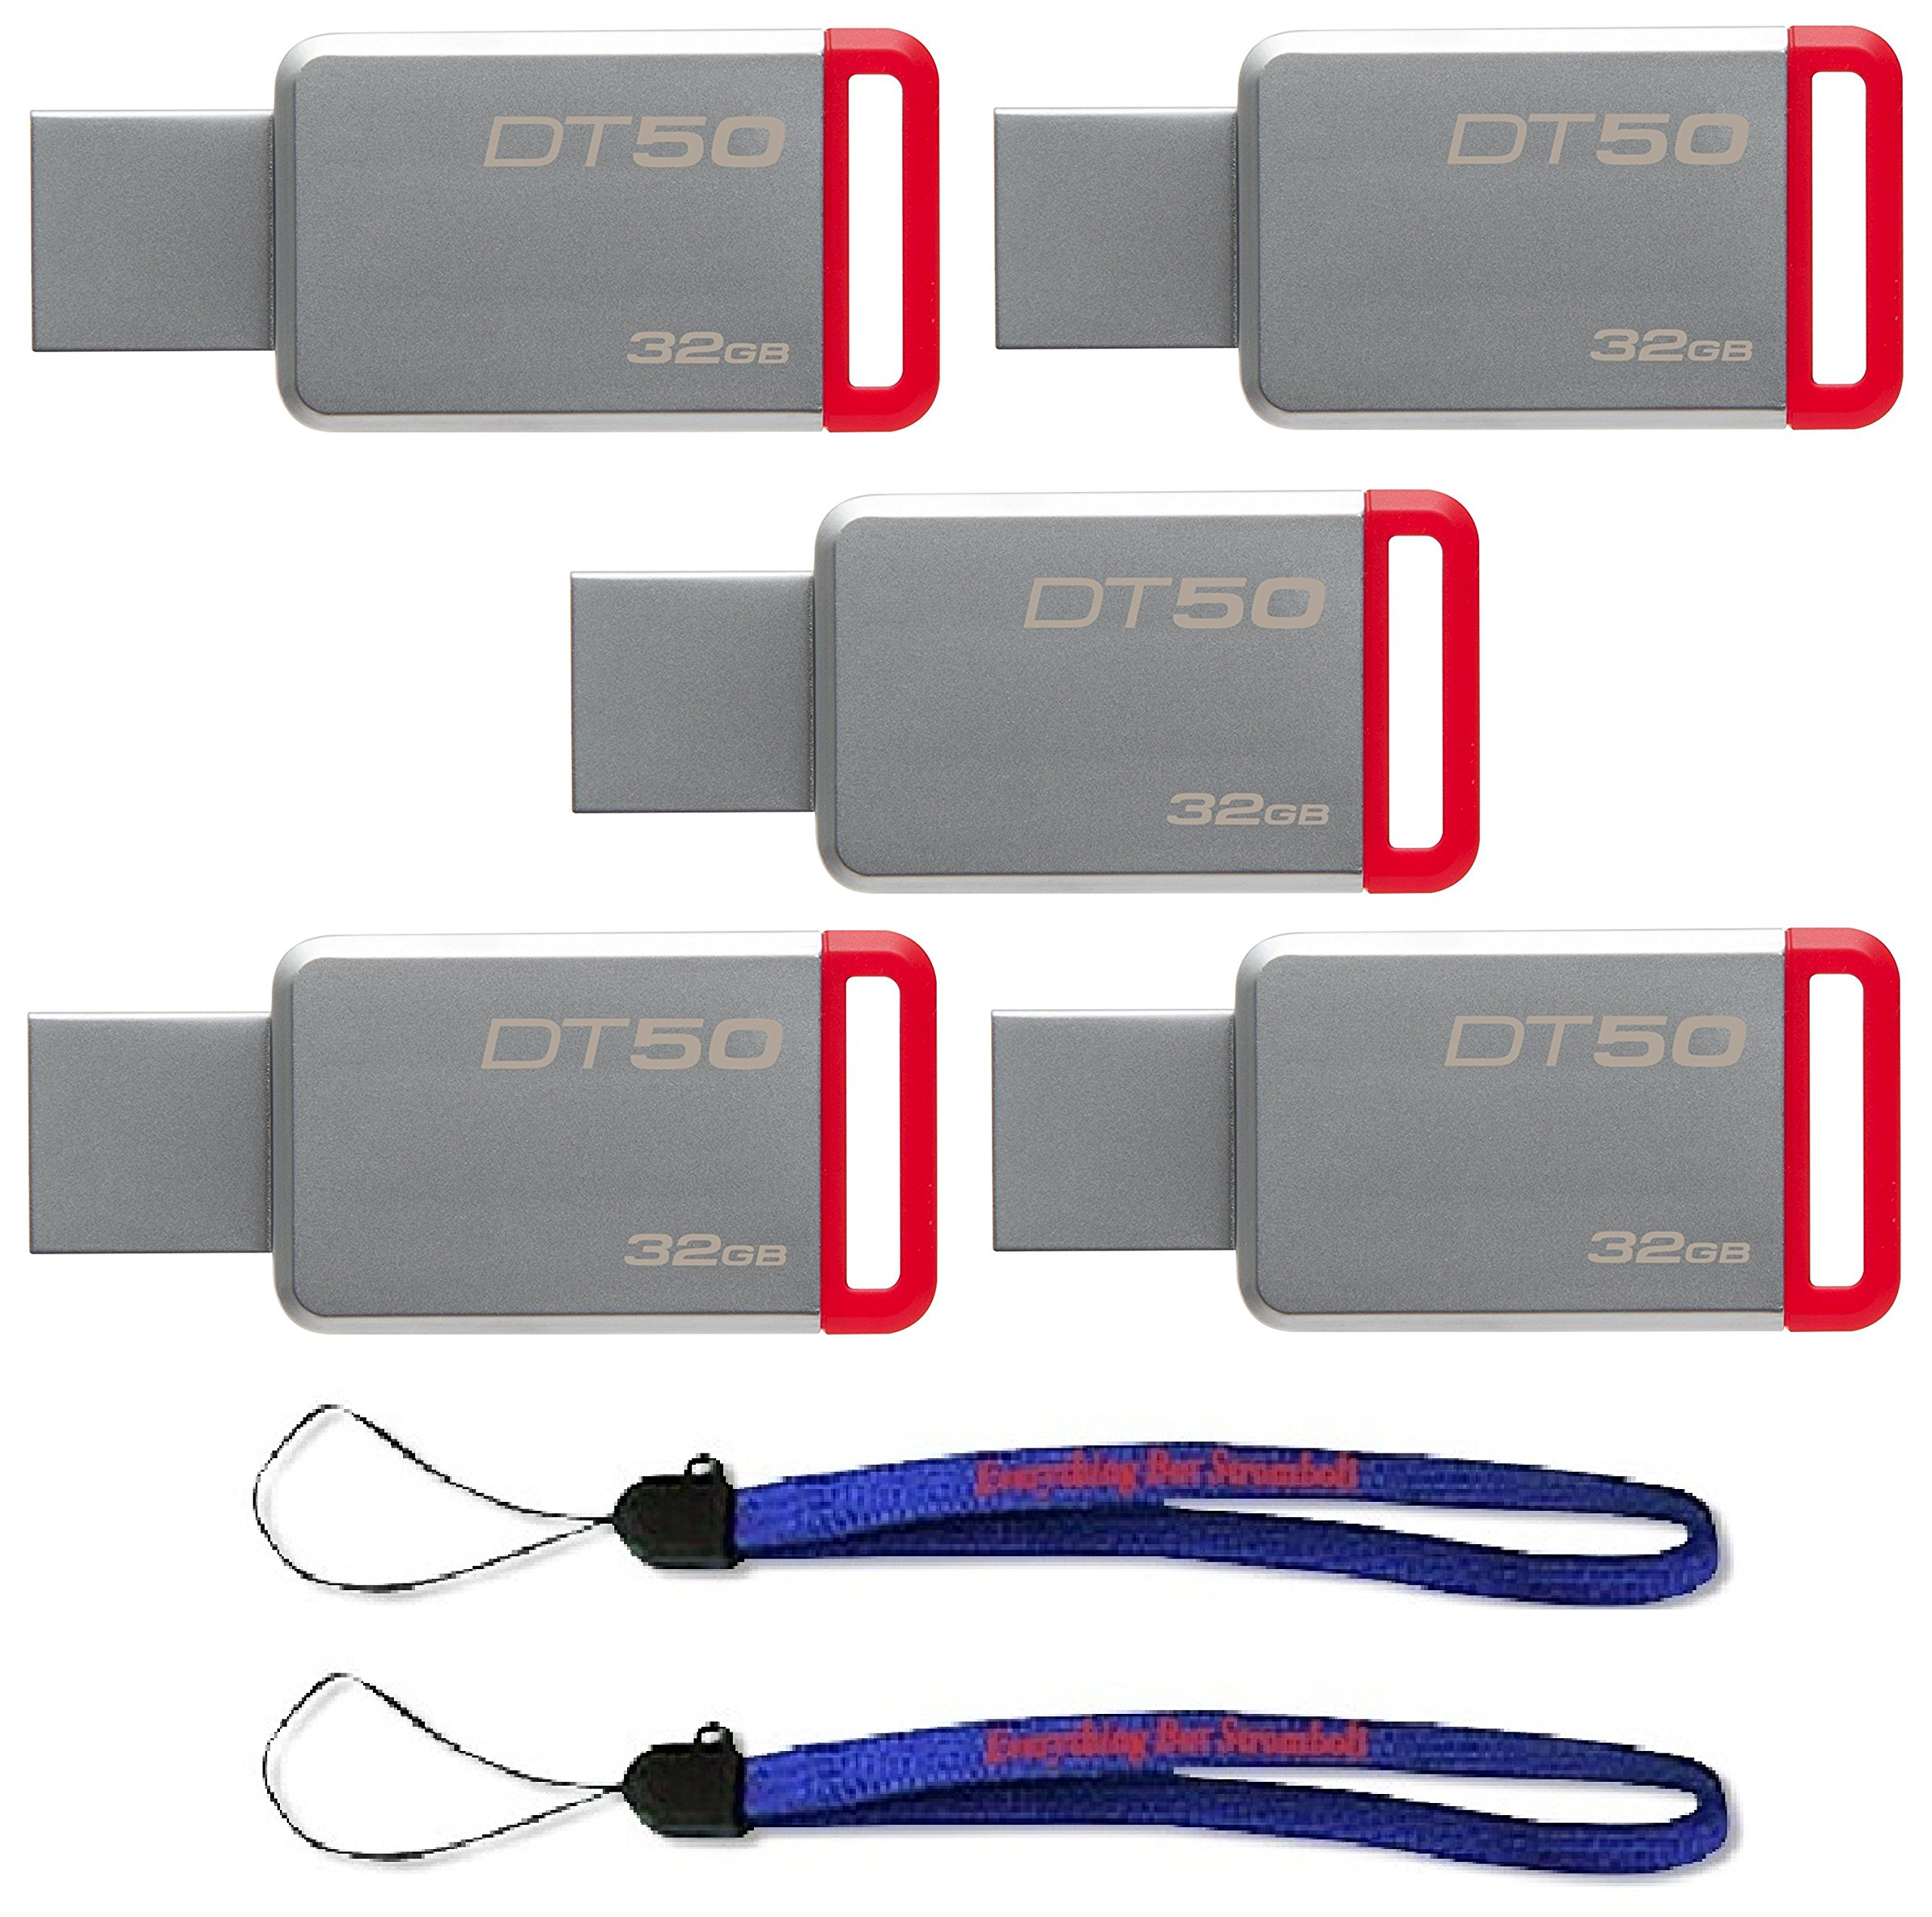 Kingston (TM) Digital 32GB (5 Pack) USB 3.0 Data Traveler 50 Flash Drive DT50, 110MB/s Read, 15MB/s Write Speed with (2) Everything But Stromboli (TM) Lanyard (DT50/32GB)